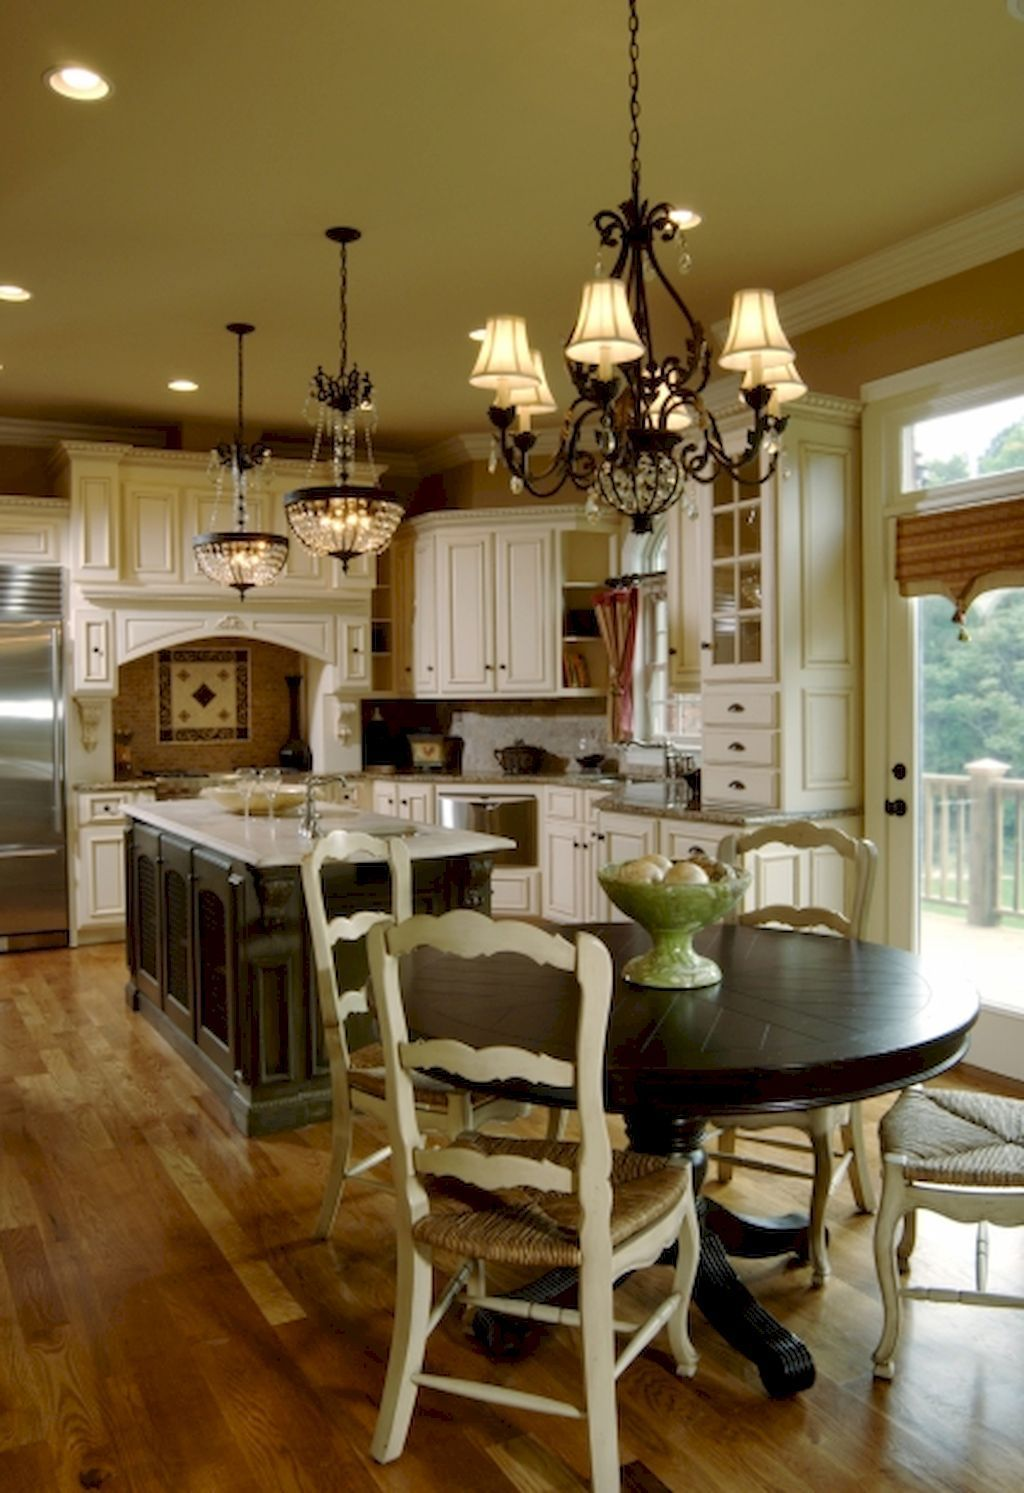 French country kitchen design u decor ideas french country